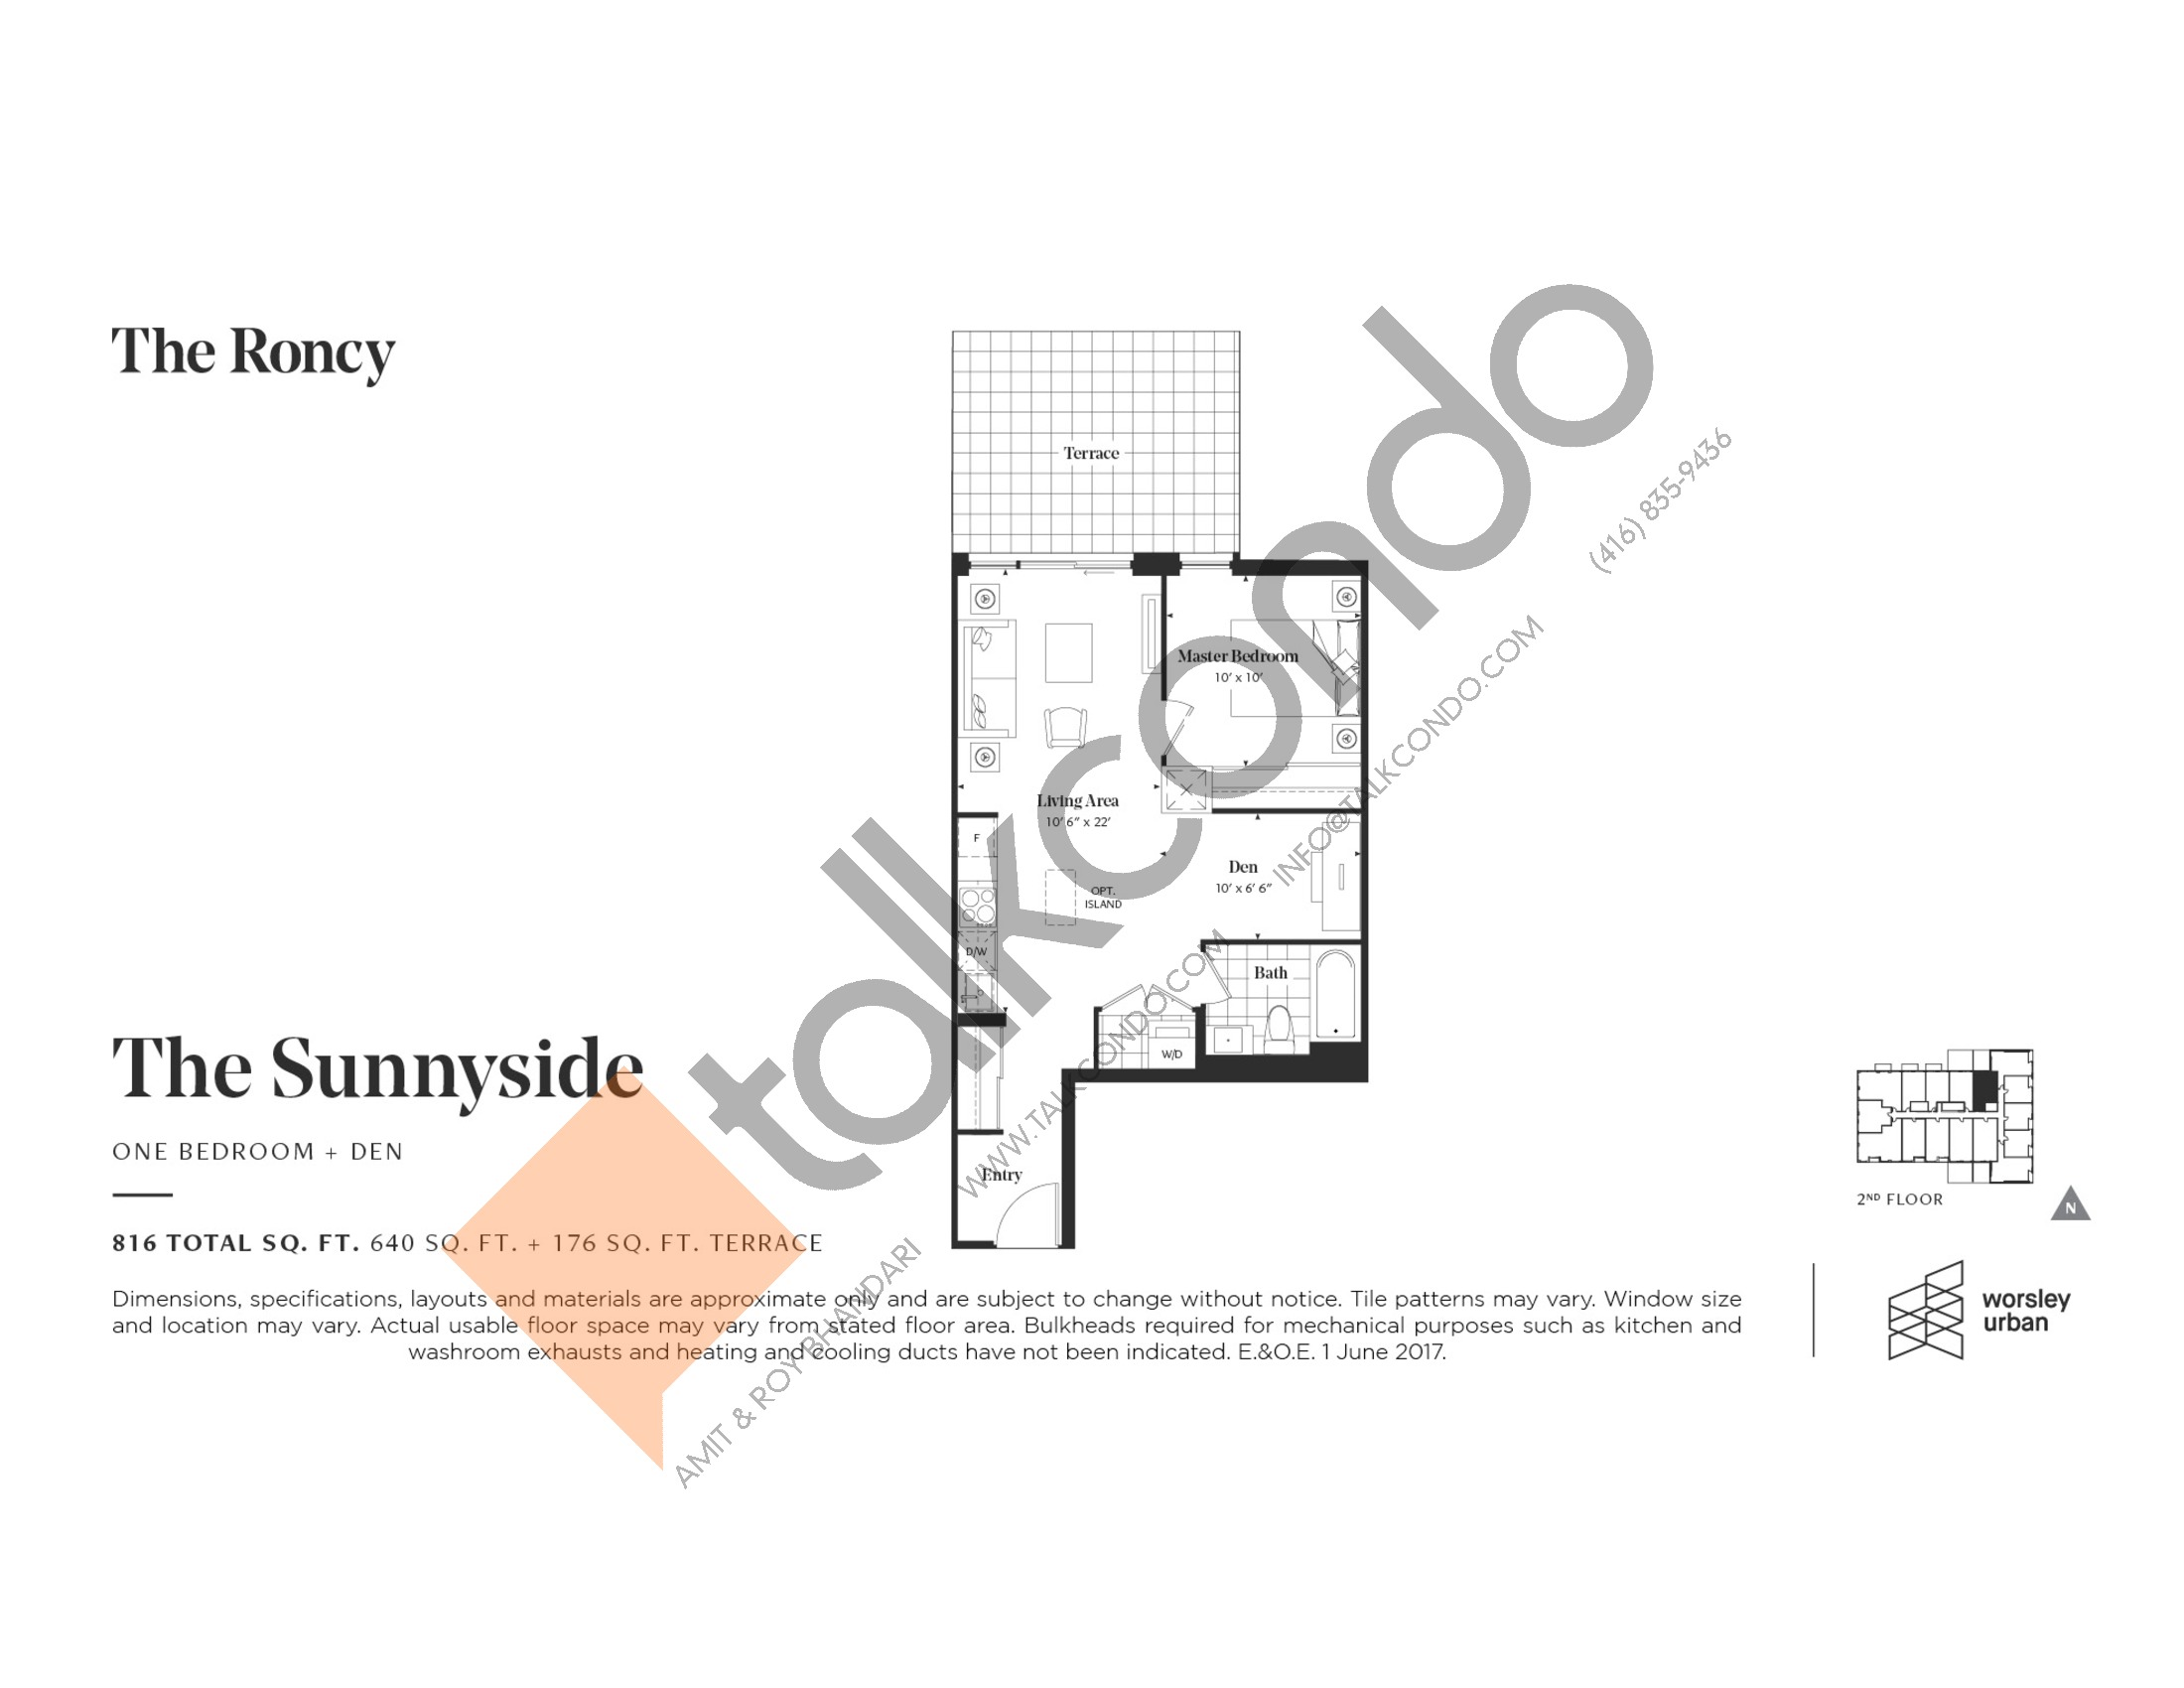 The Sunnyside Floor Plan at The Roncy Condos - 640 sq.ft